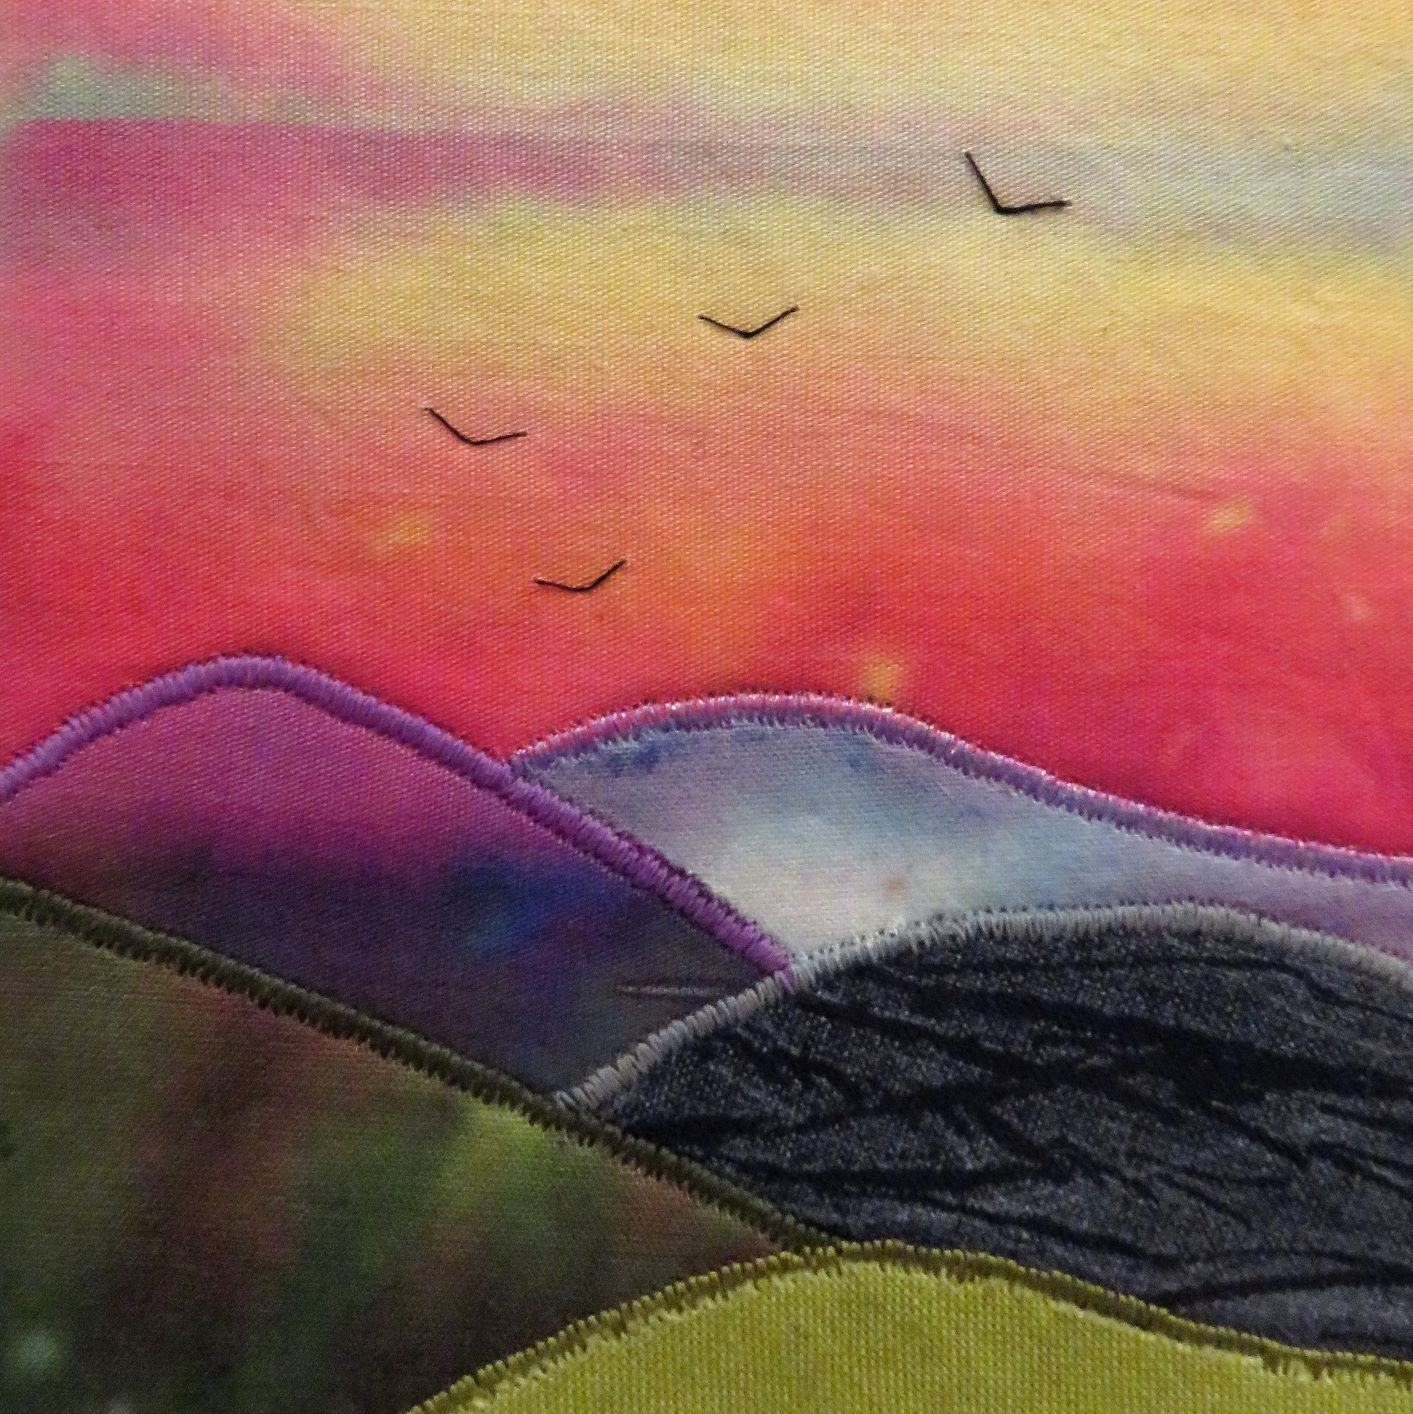 I lift up my eyes up to the hills textile art